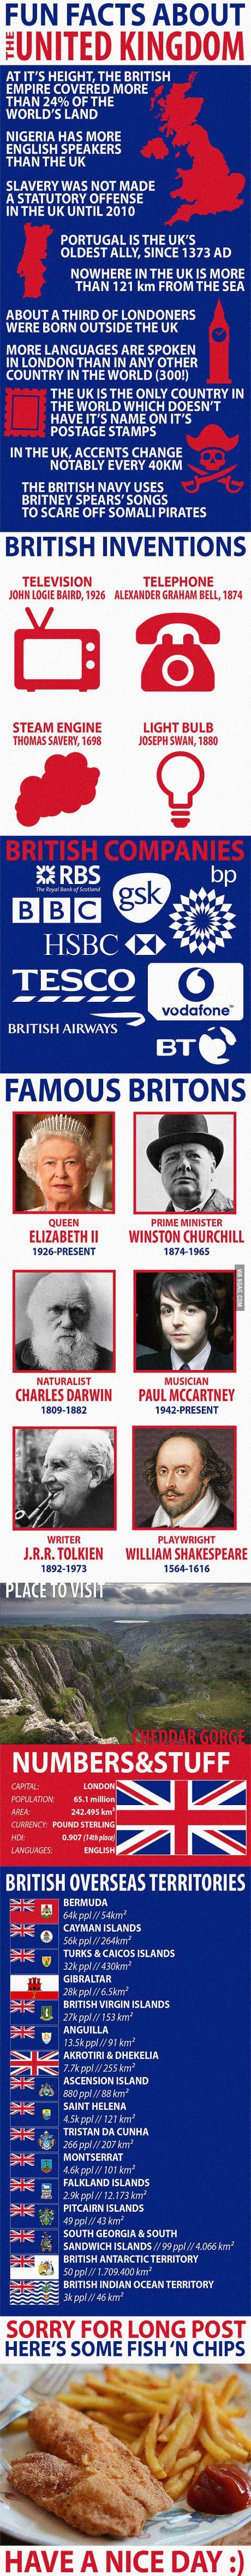 Fun Facts about the United Kingdom